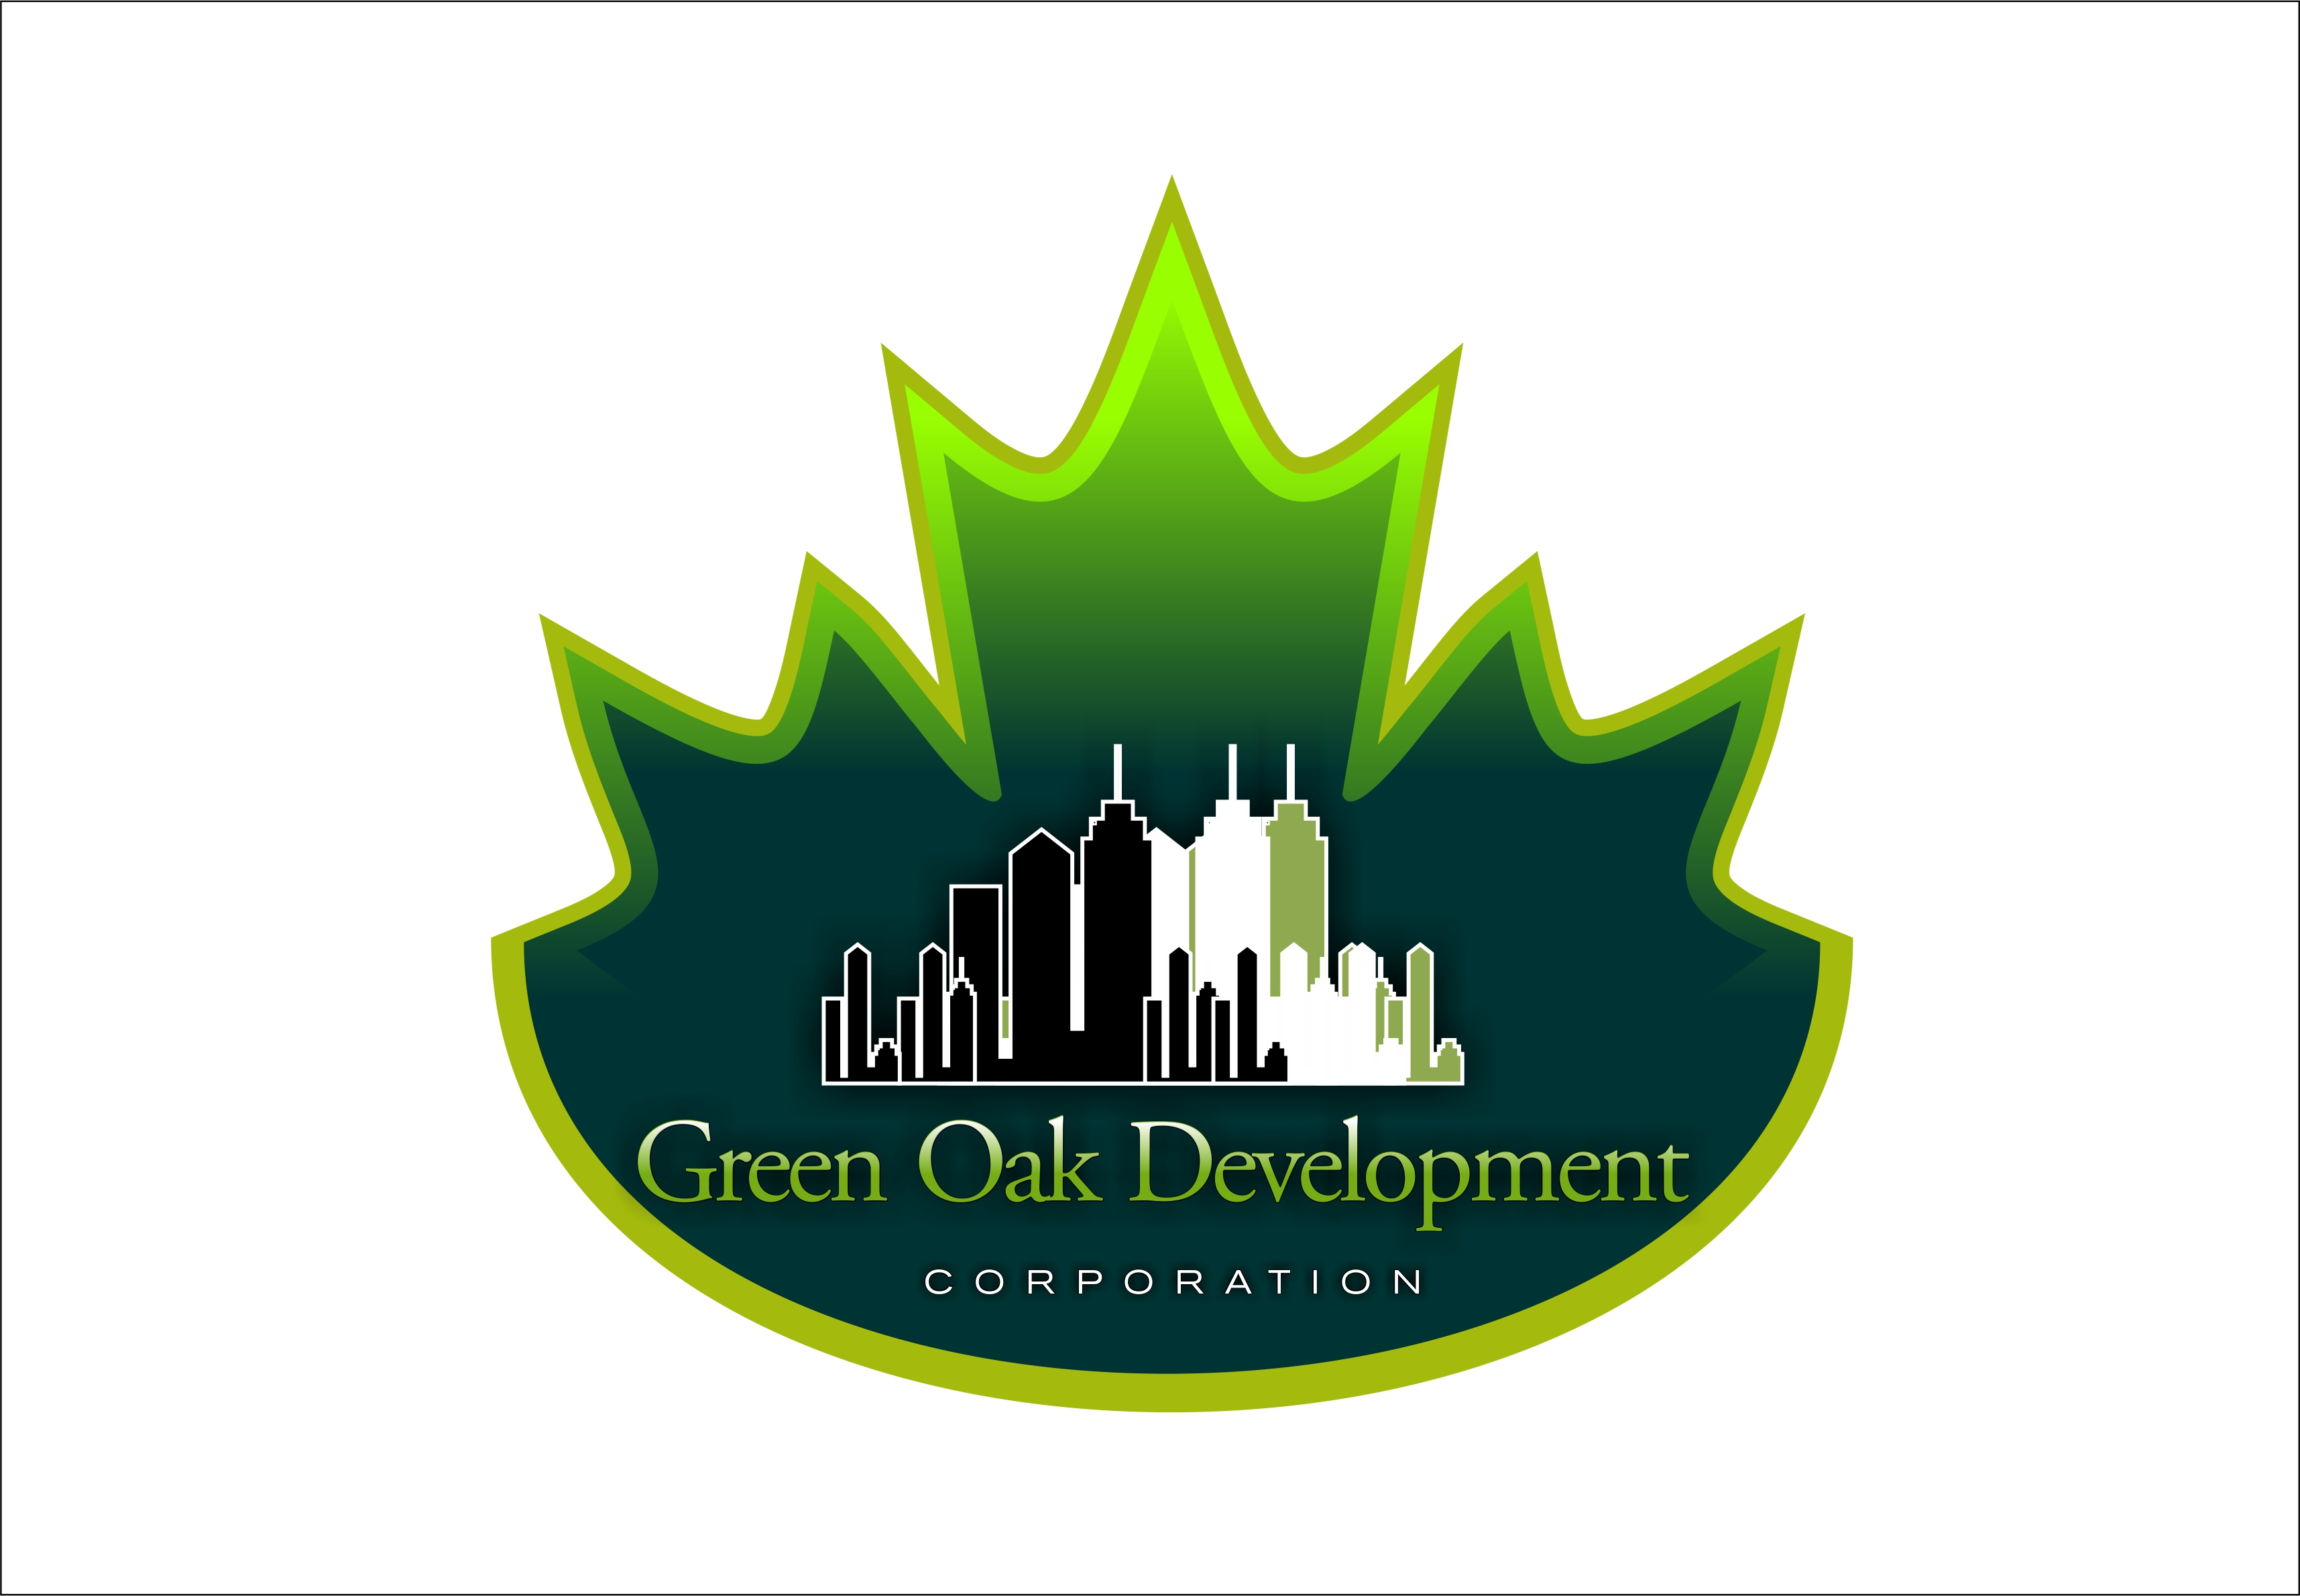 Logo Design by Fatih Ercan - Entry No. 177 in the Logo Design Contest Unique Logo Design Wanted for Green Oak Development Corp..